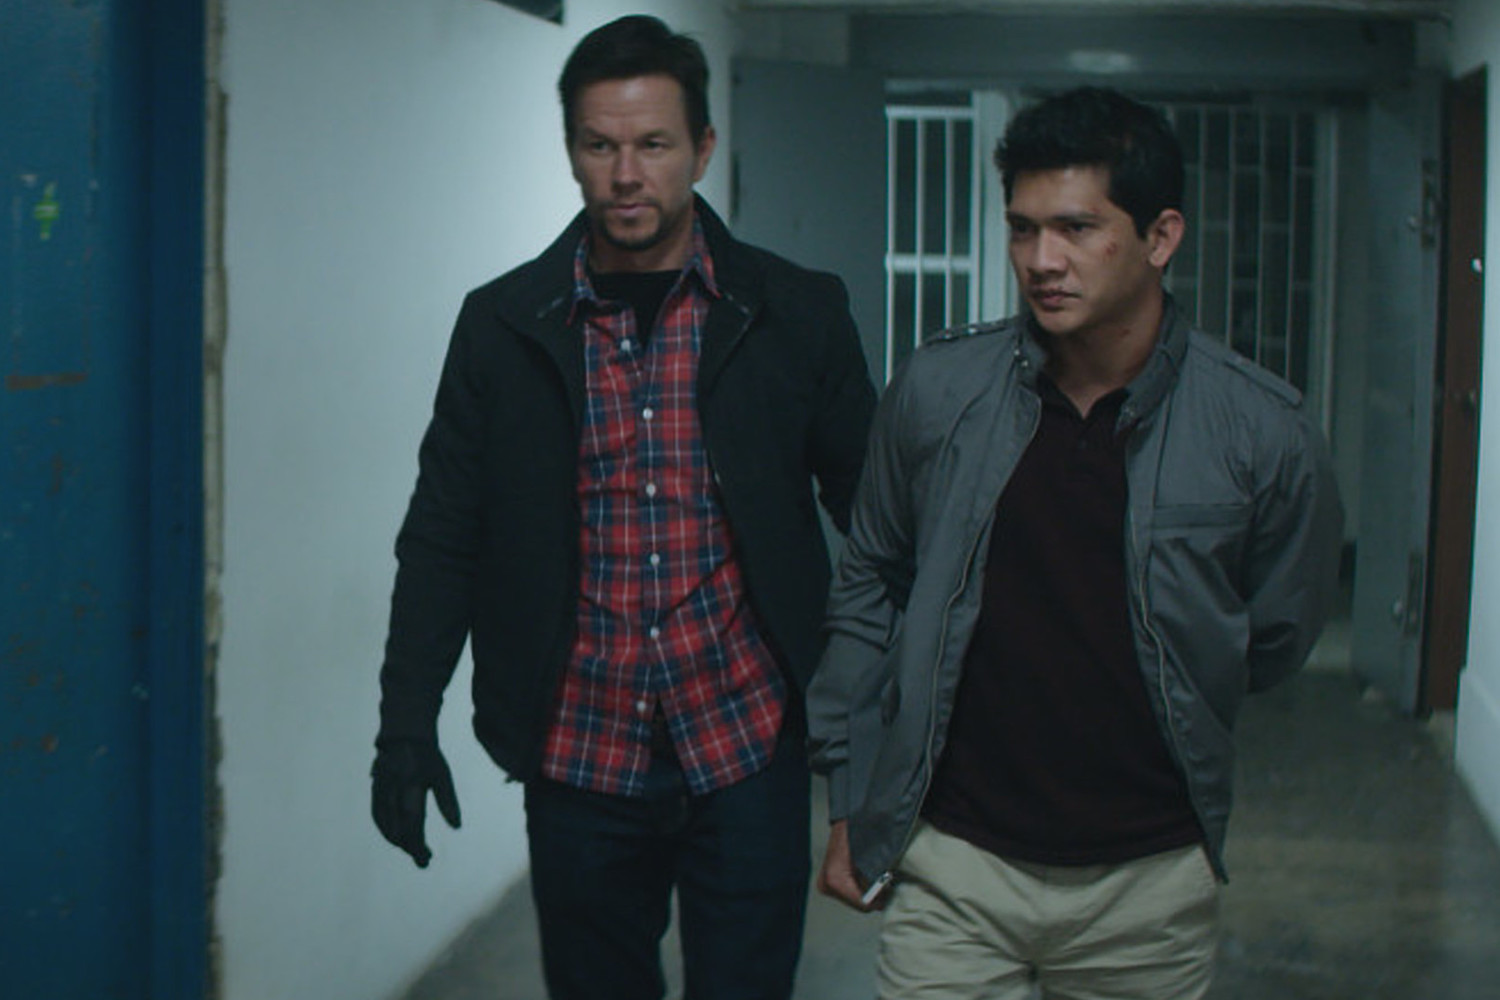 Mark Wahlberg Teams Up With Martial Arts Legend Iko Uwais in the CIA Thriller 'Mile 22'